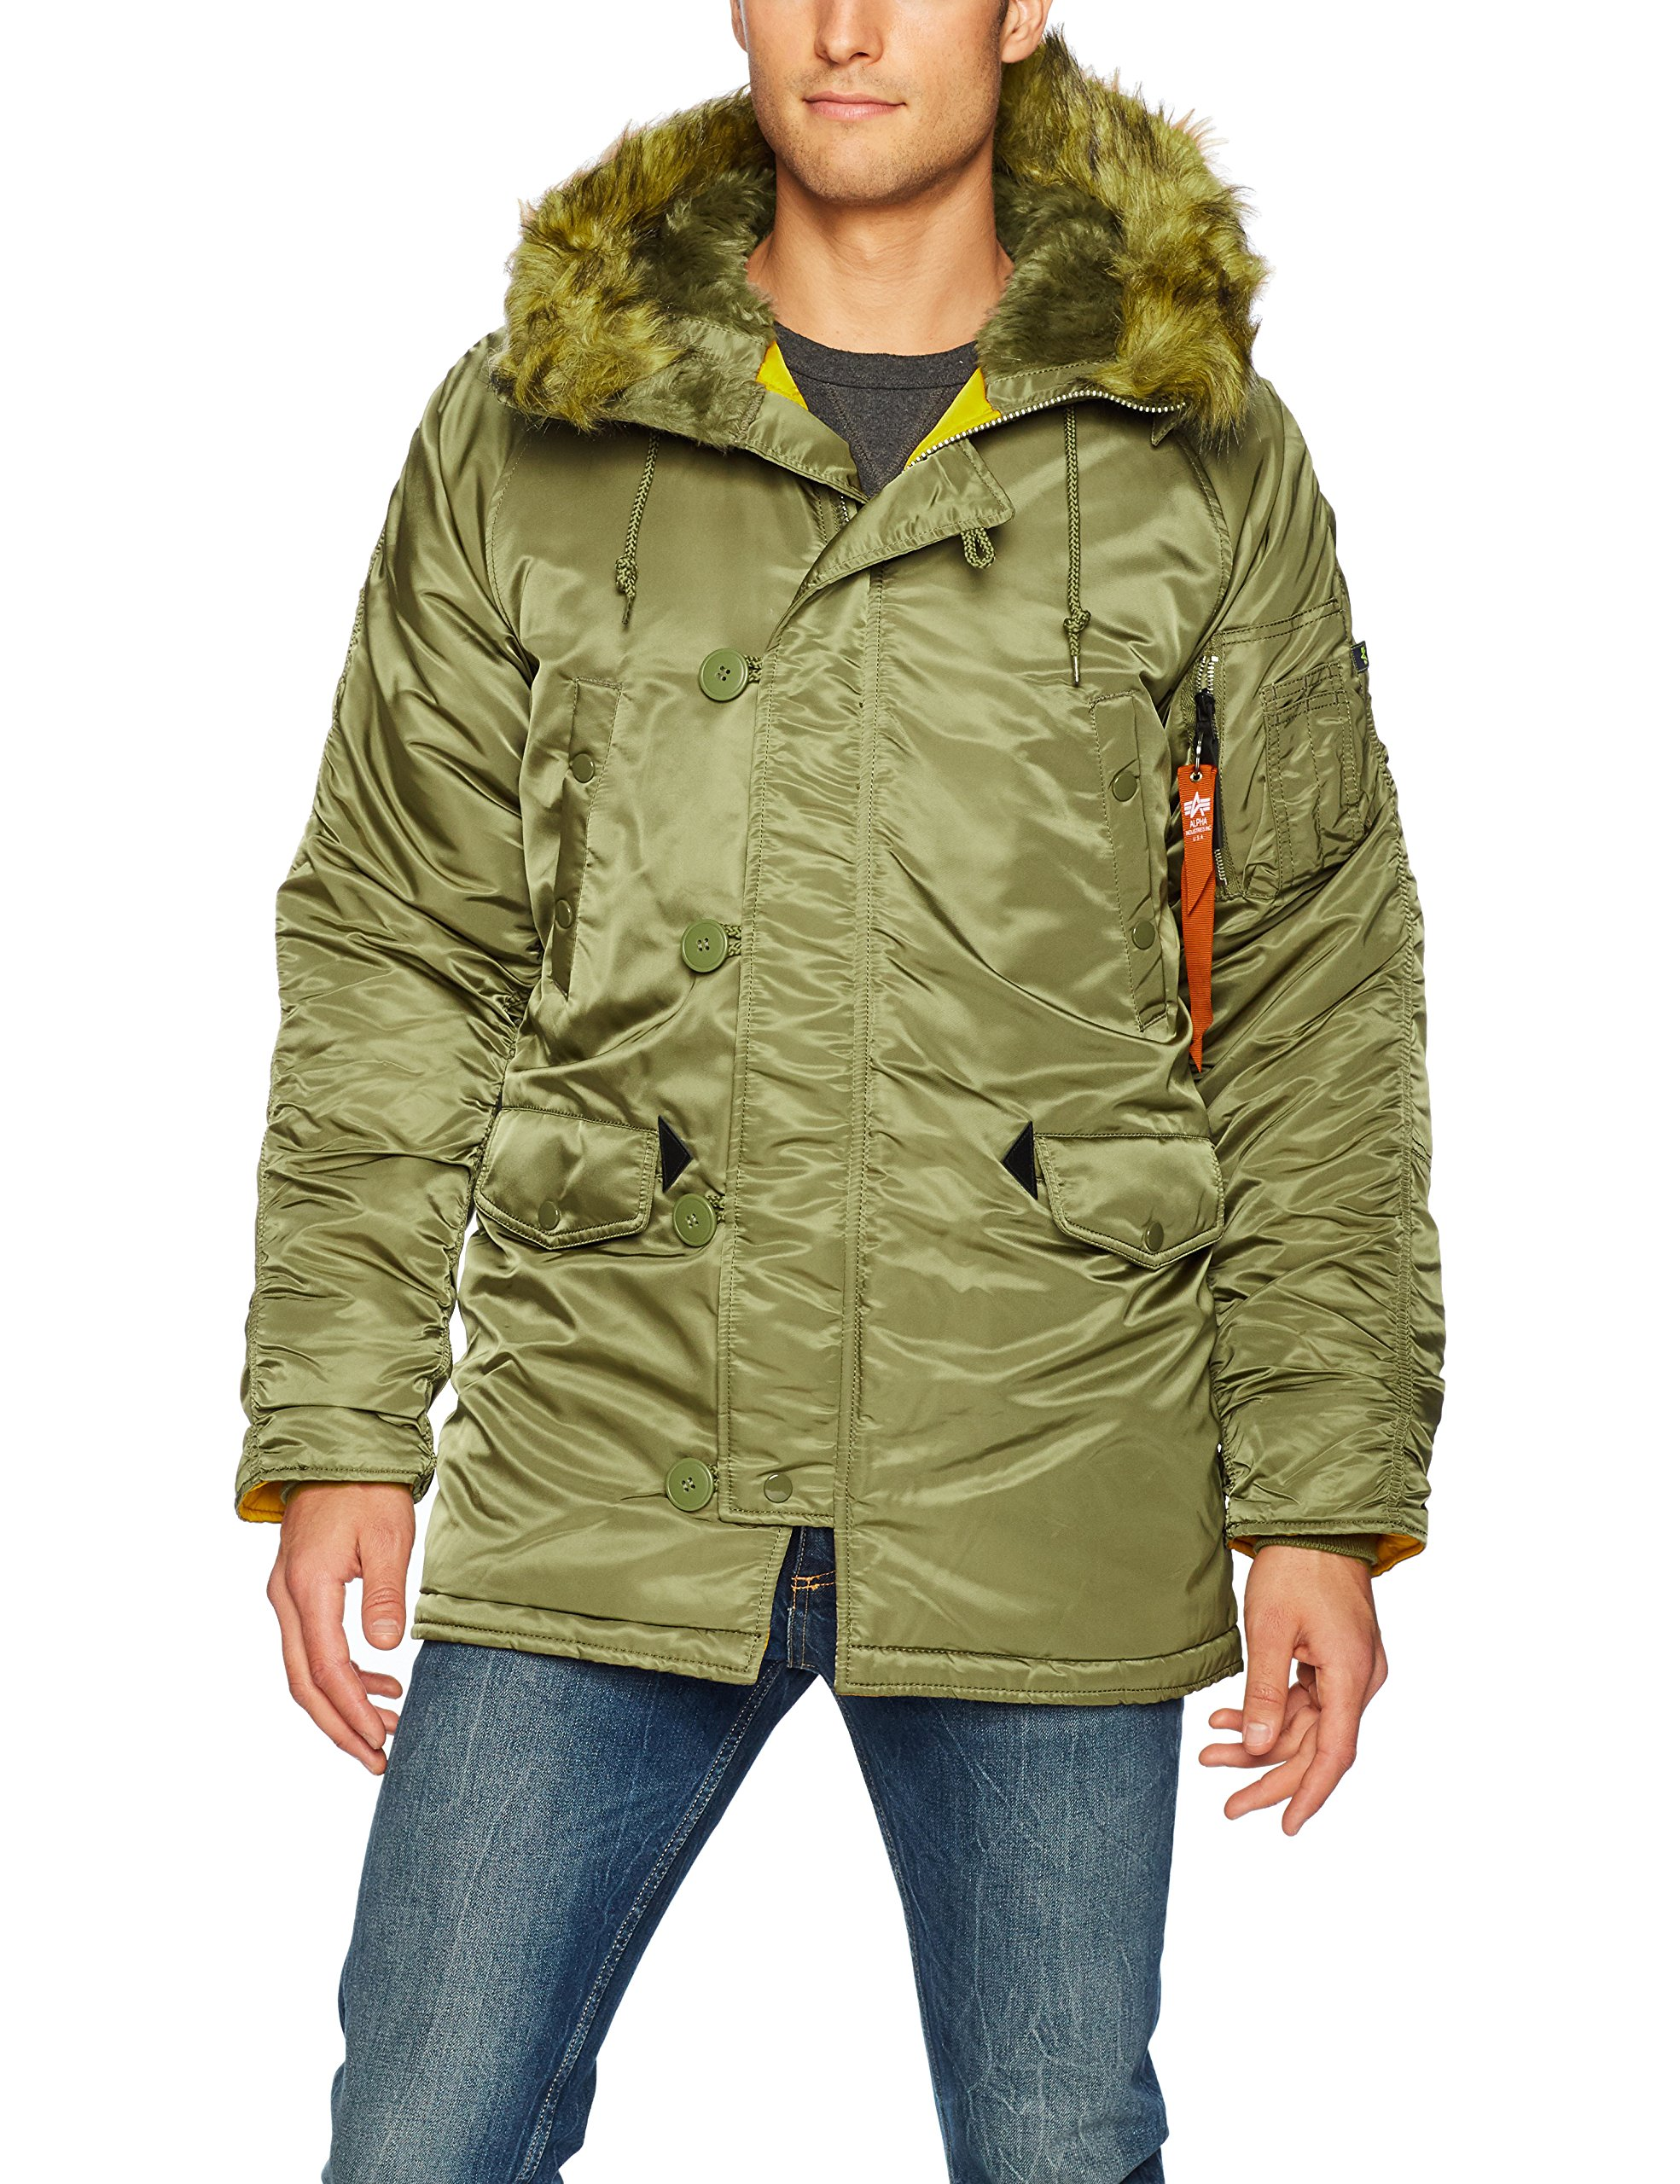 Alpha Industries Men's N-3B Slim-Fit Parka Jacket with Removable Faux-Fur Hood Trim, Vintage Olive/Orange Lining, XXX-Large by Alpha Industries